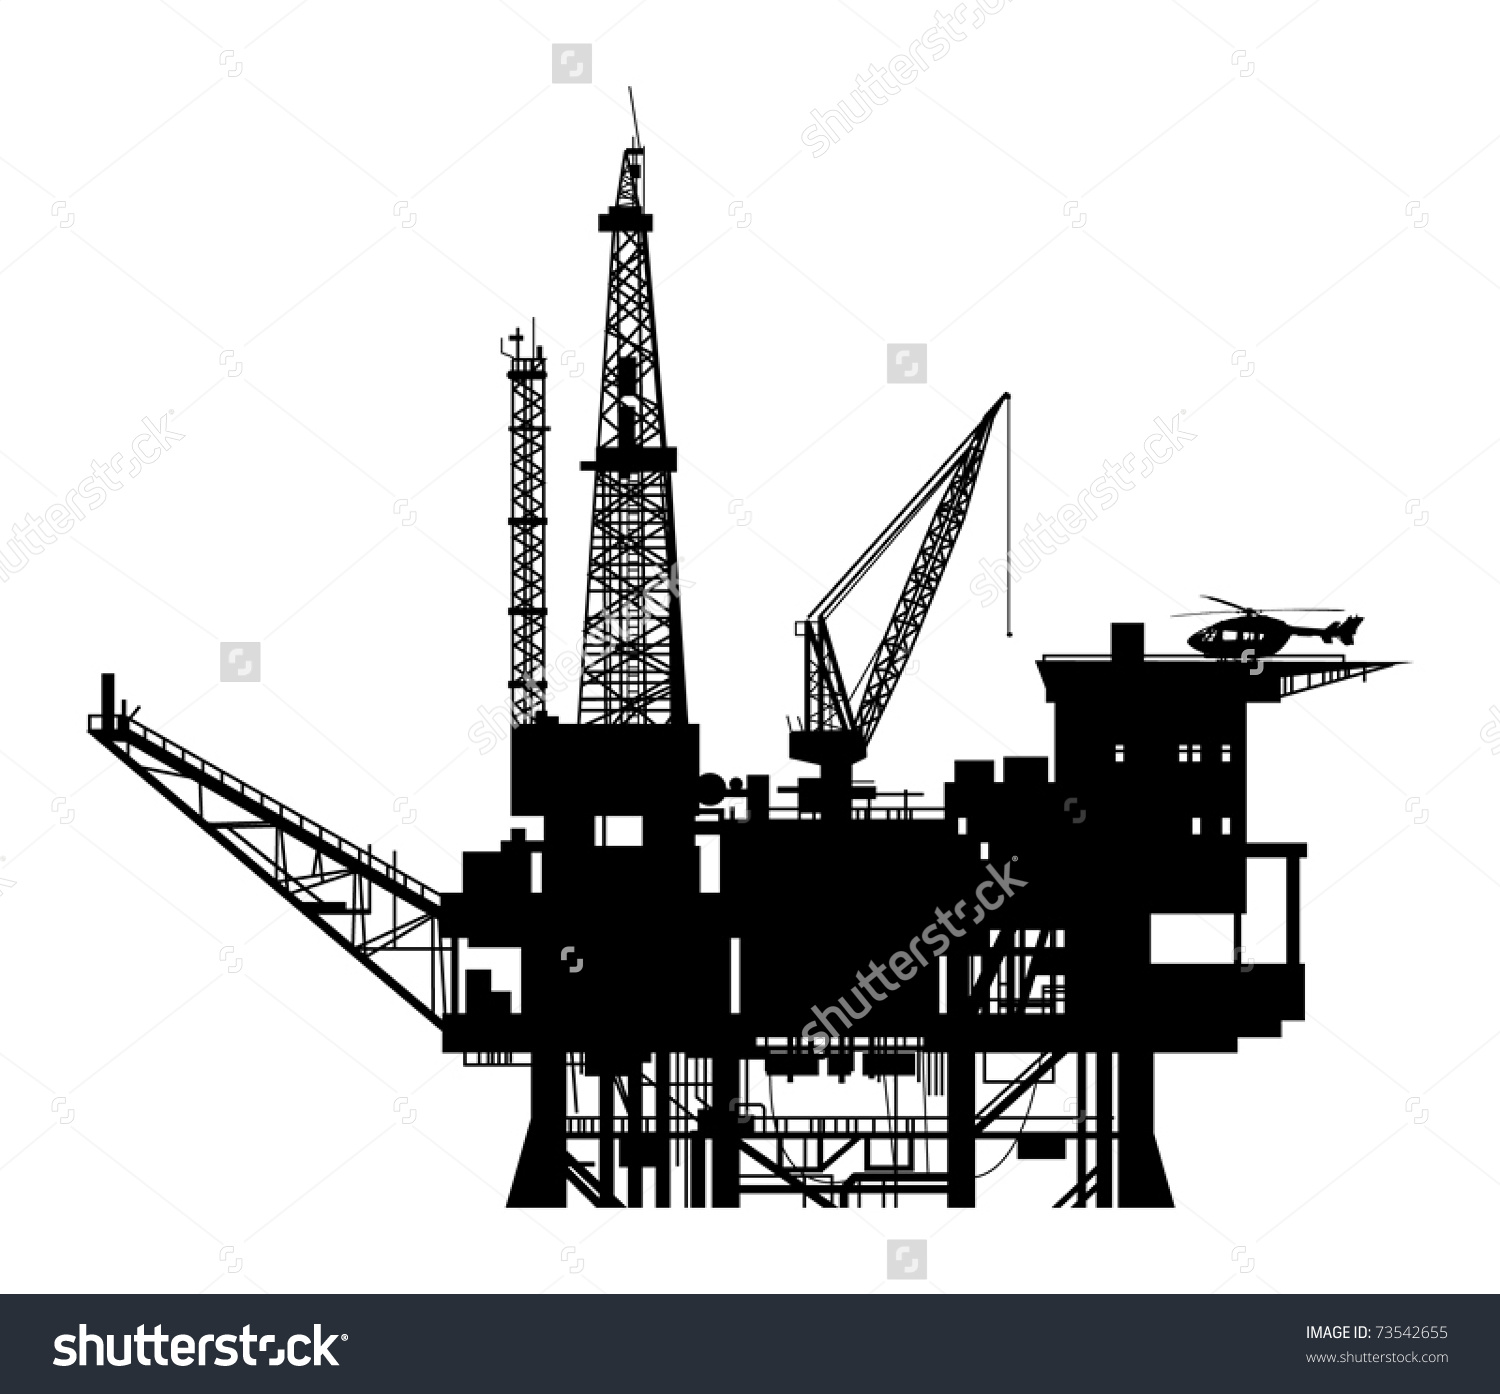 Oil drilling rig clipart.